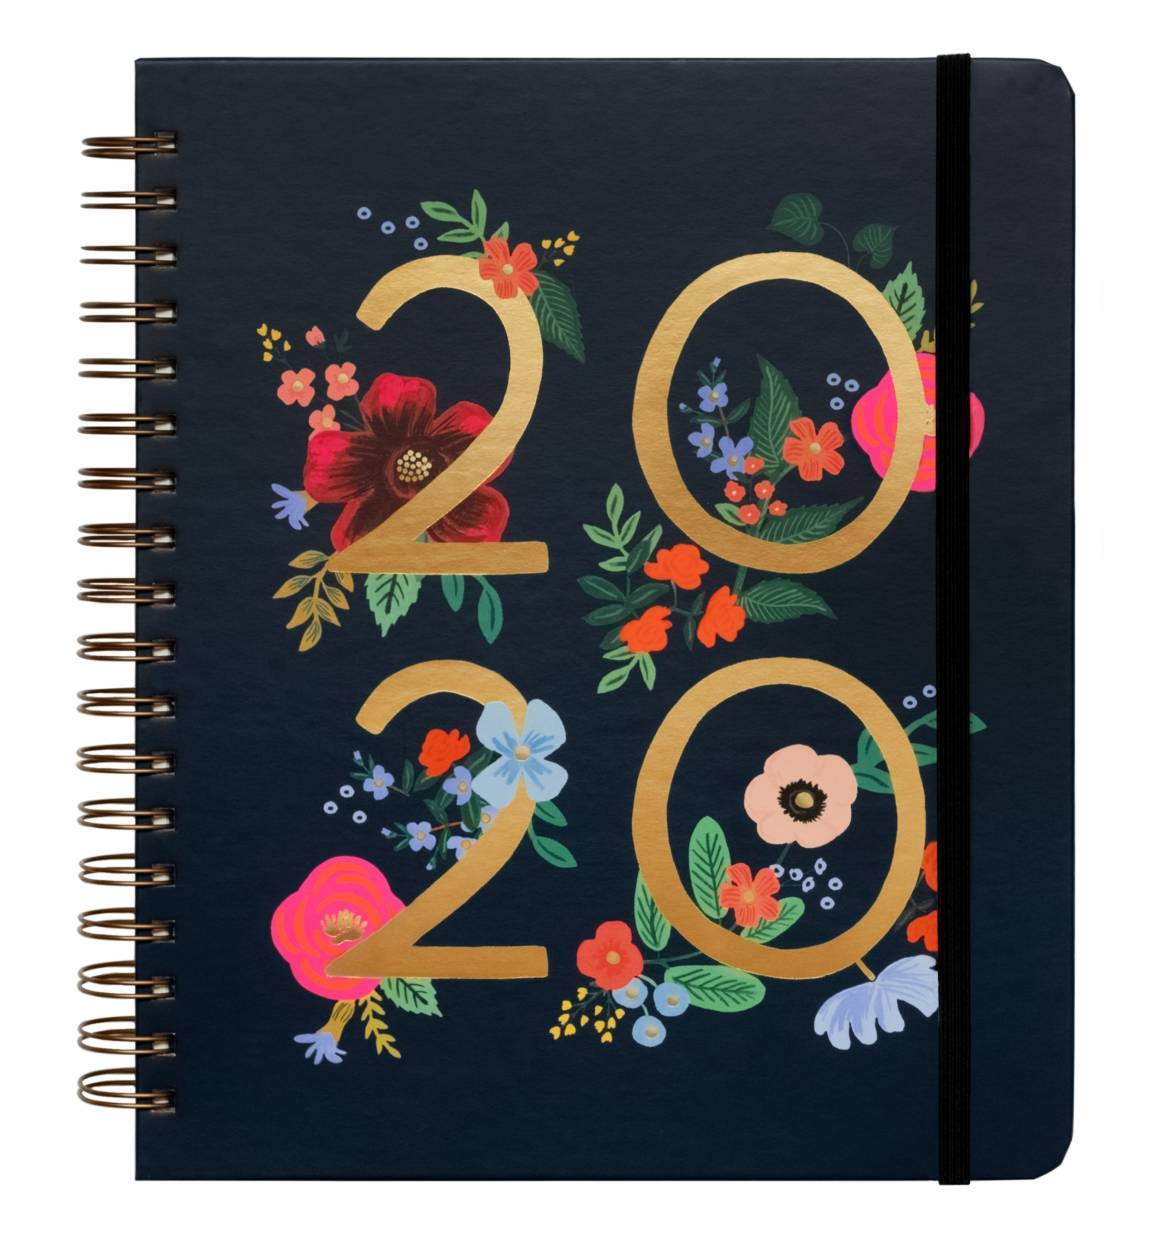 Image For Rifle Paper Co - 2020 Planner - Wild Rose